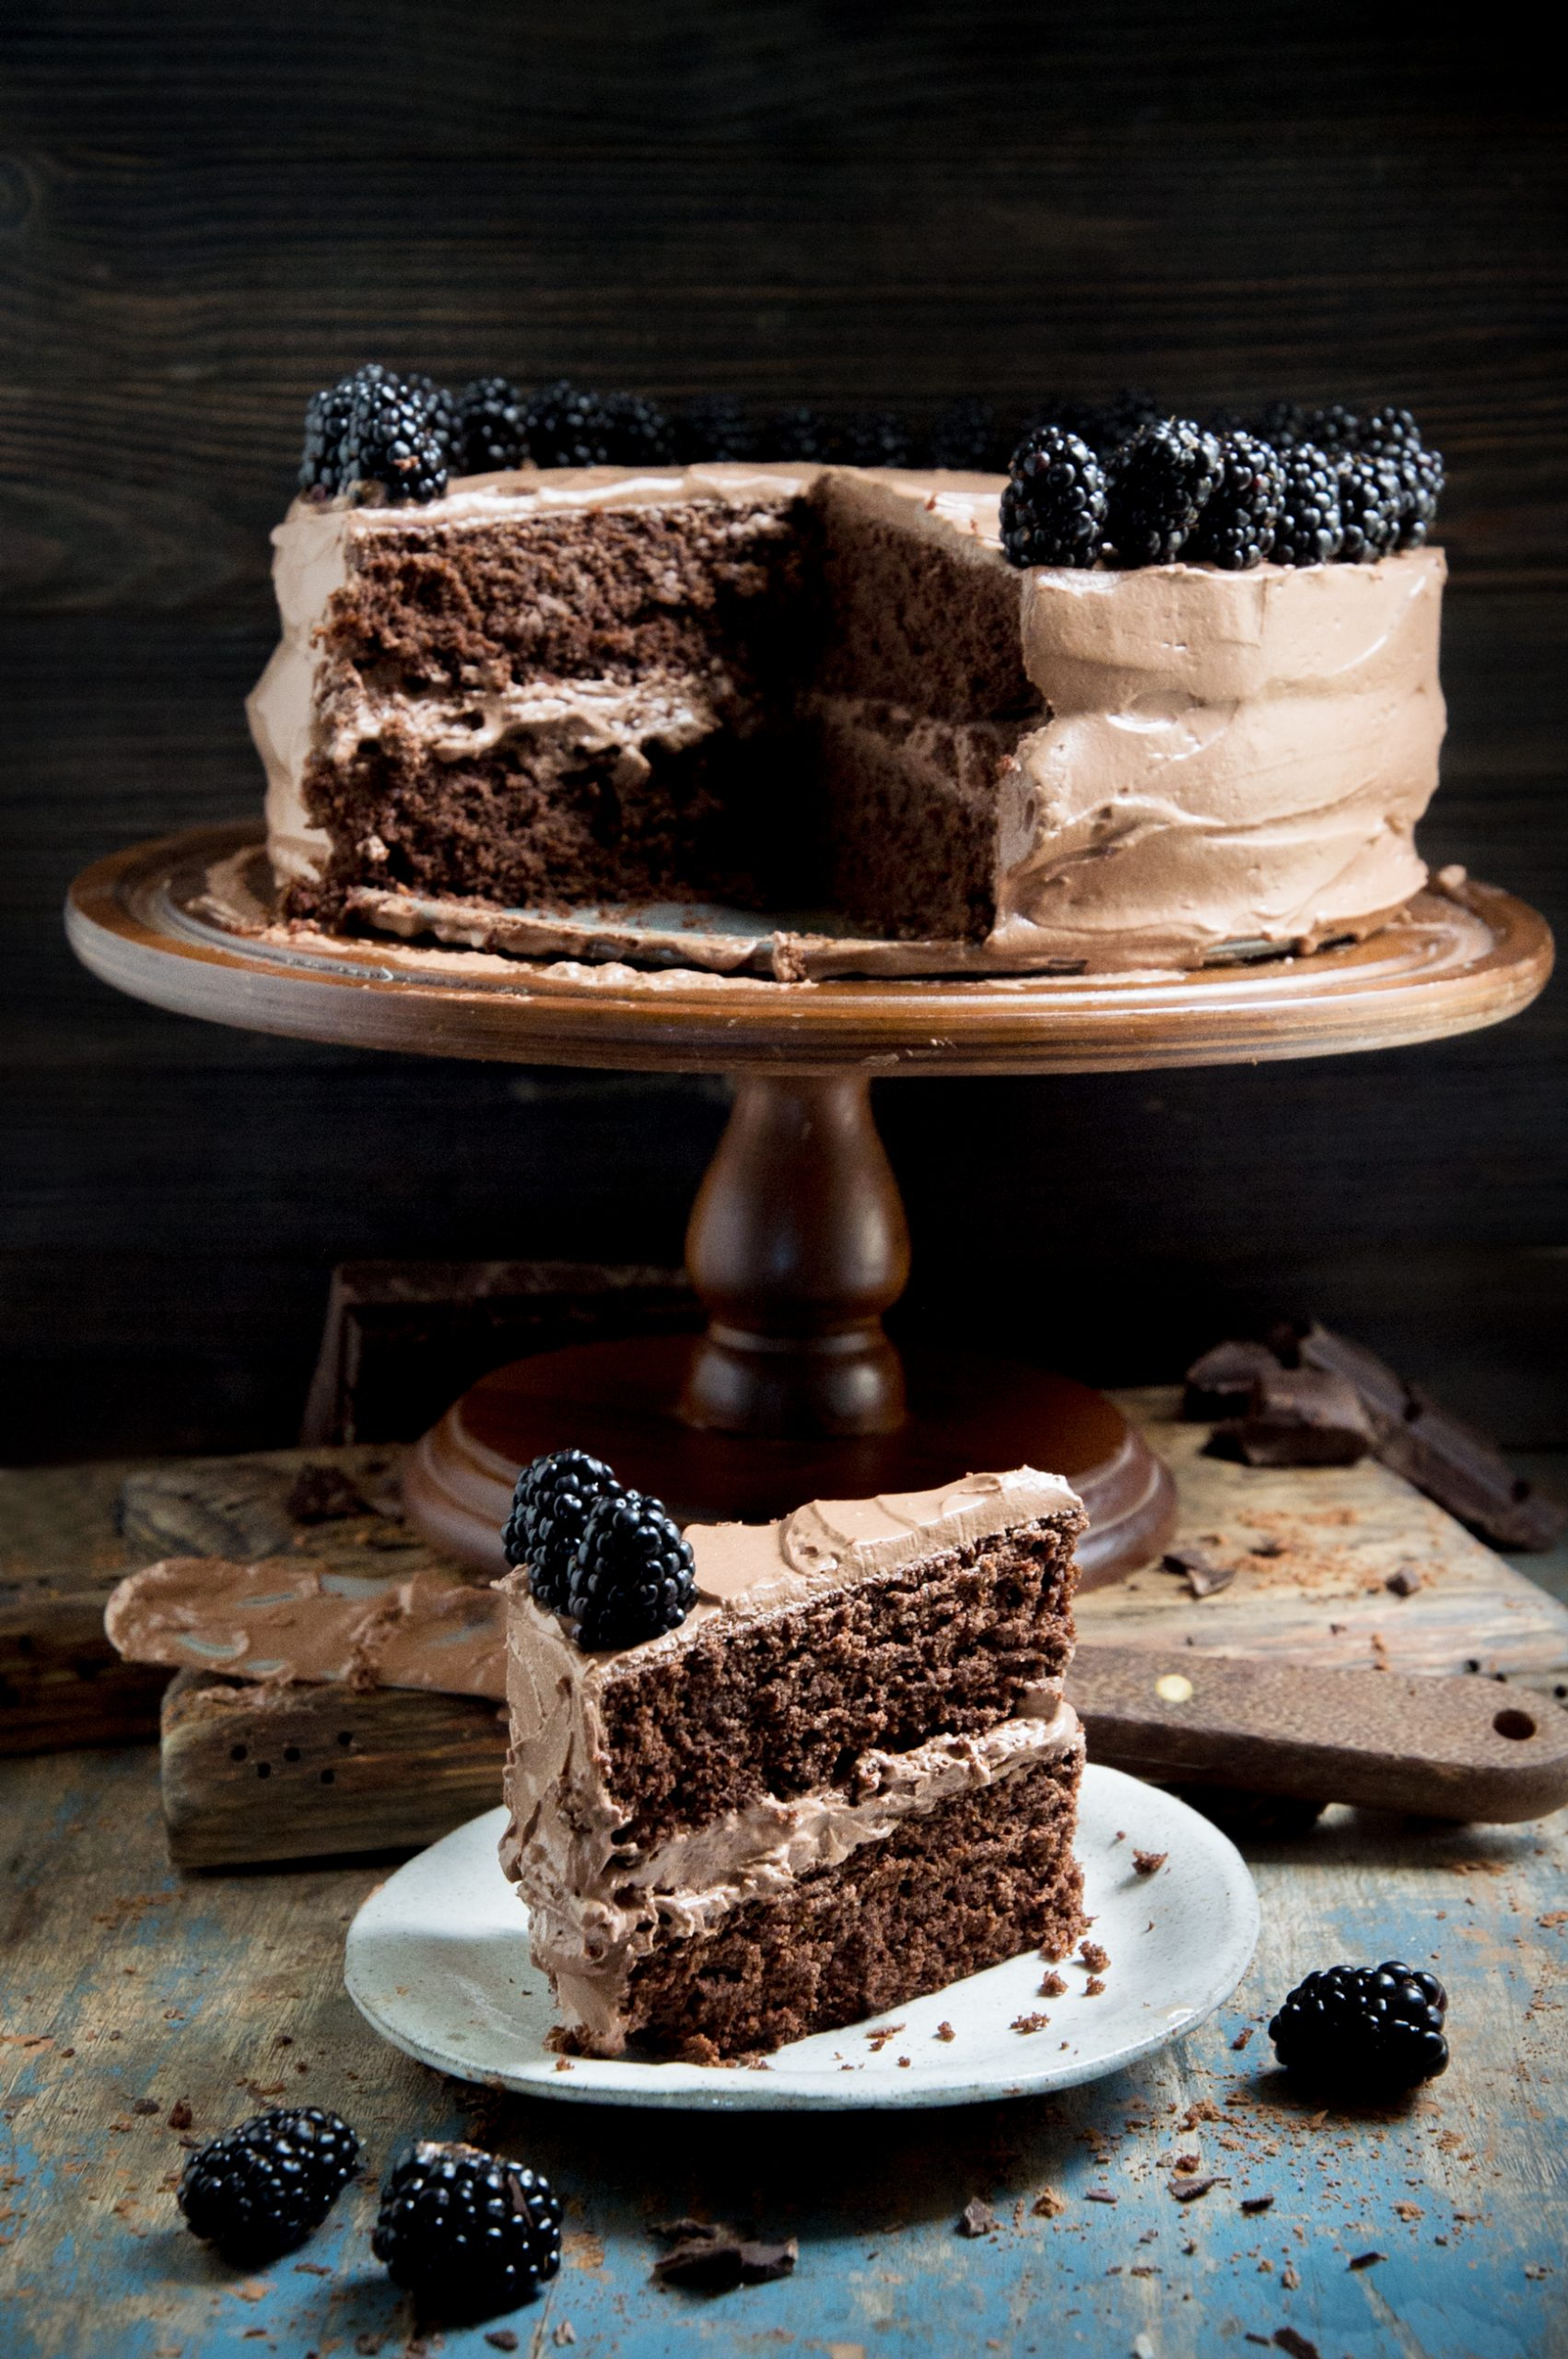 Slice of cake in front of whole cake